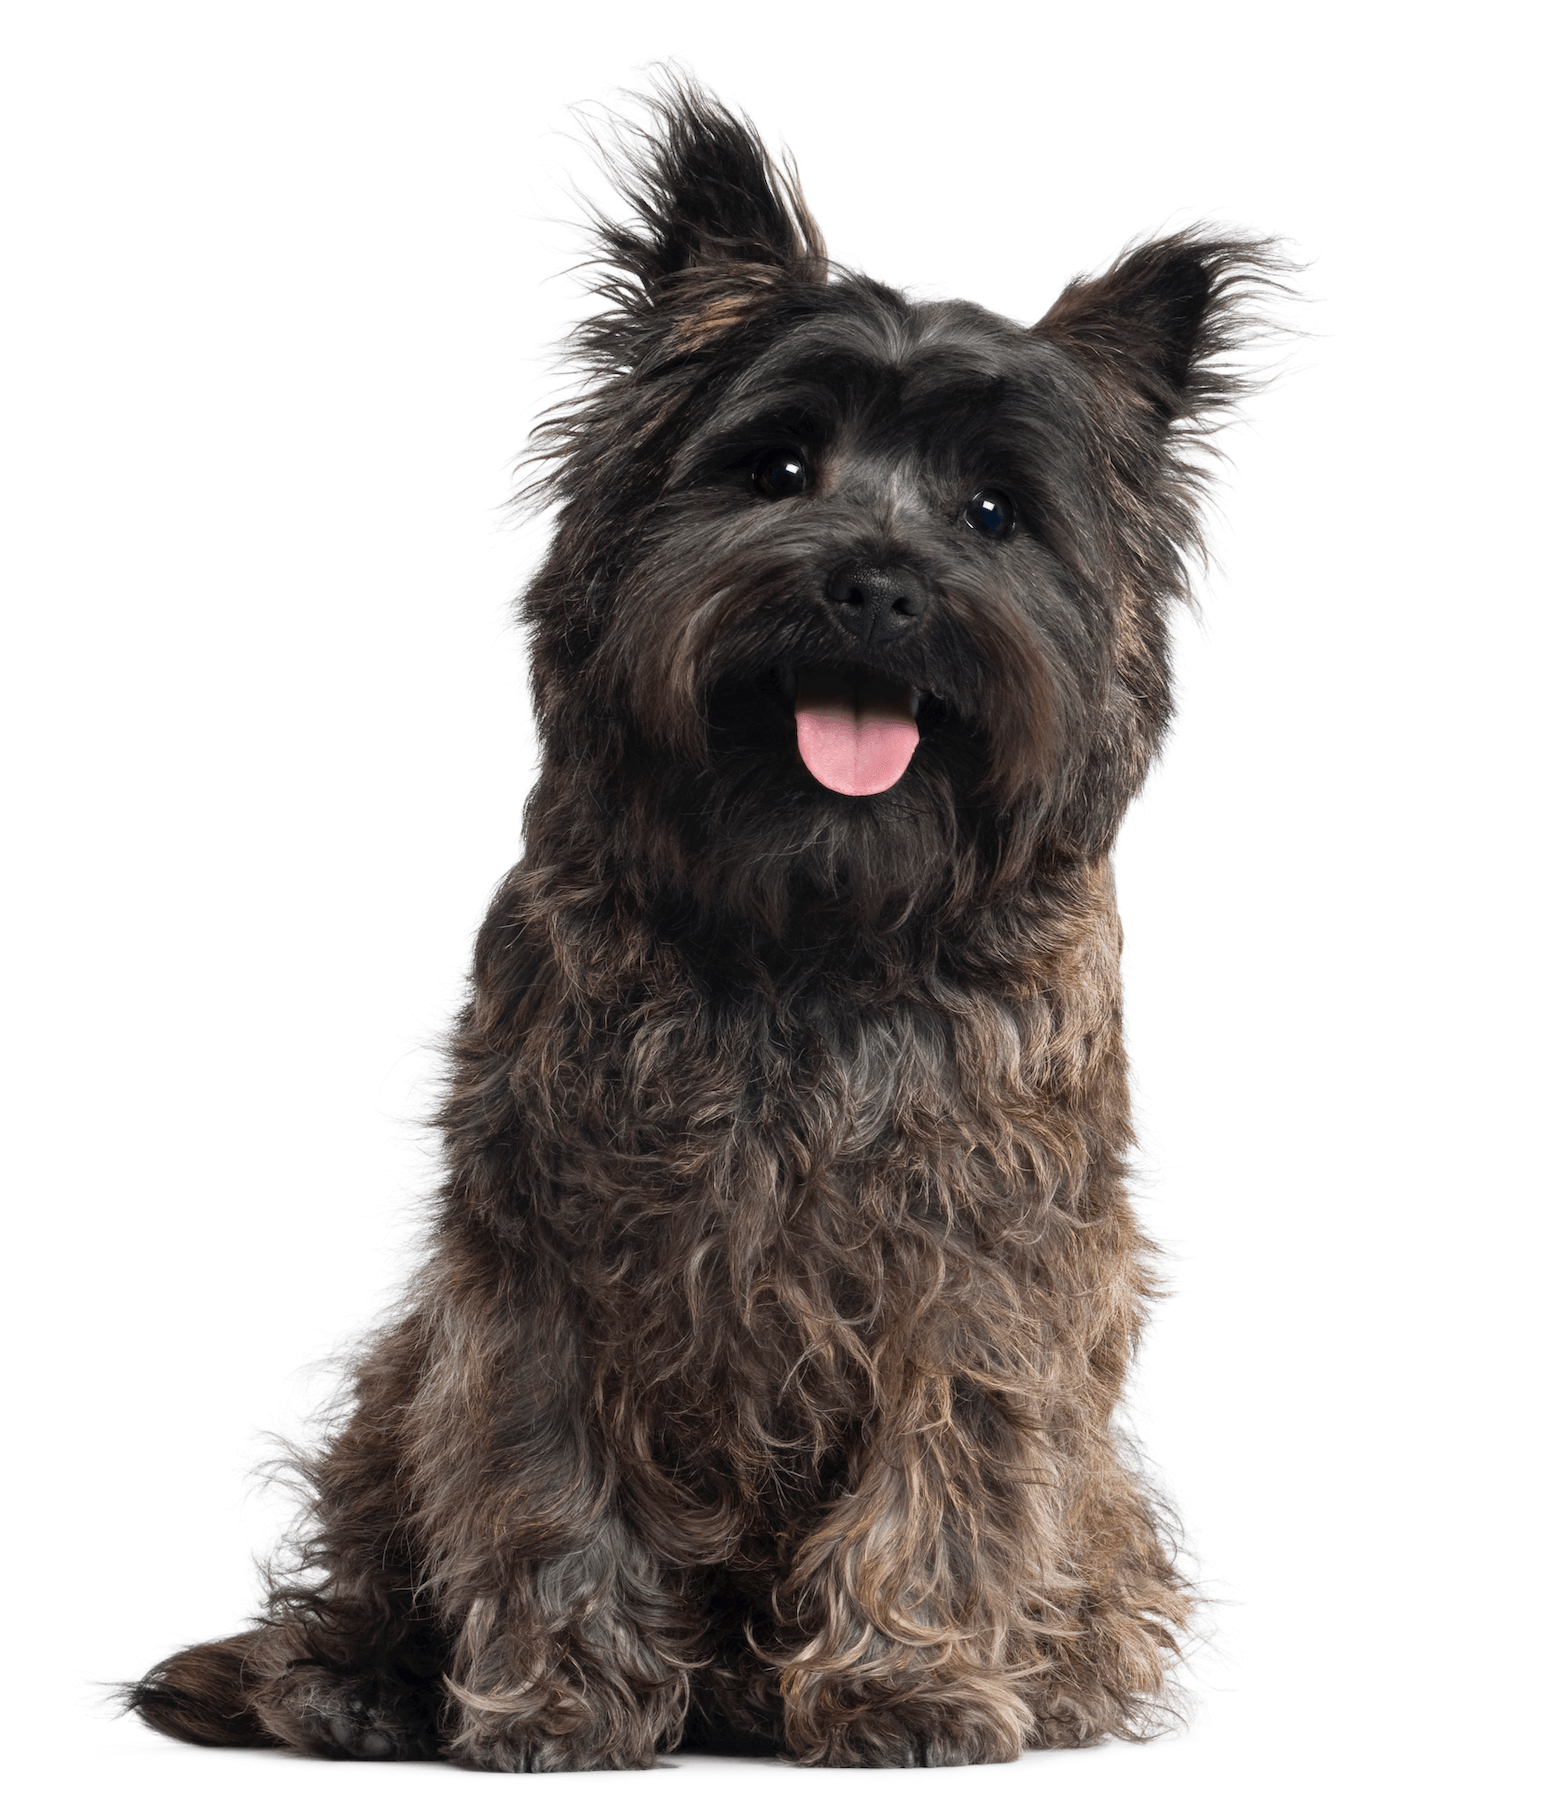 Raising Rover - Private Dog Training and Coaching